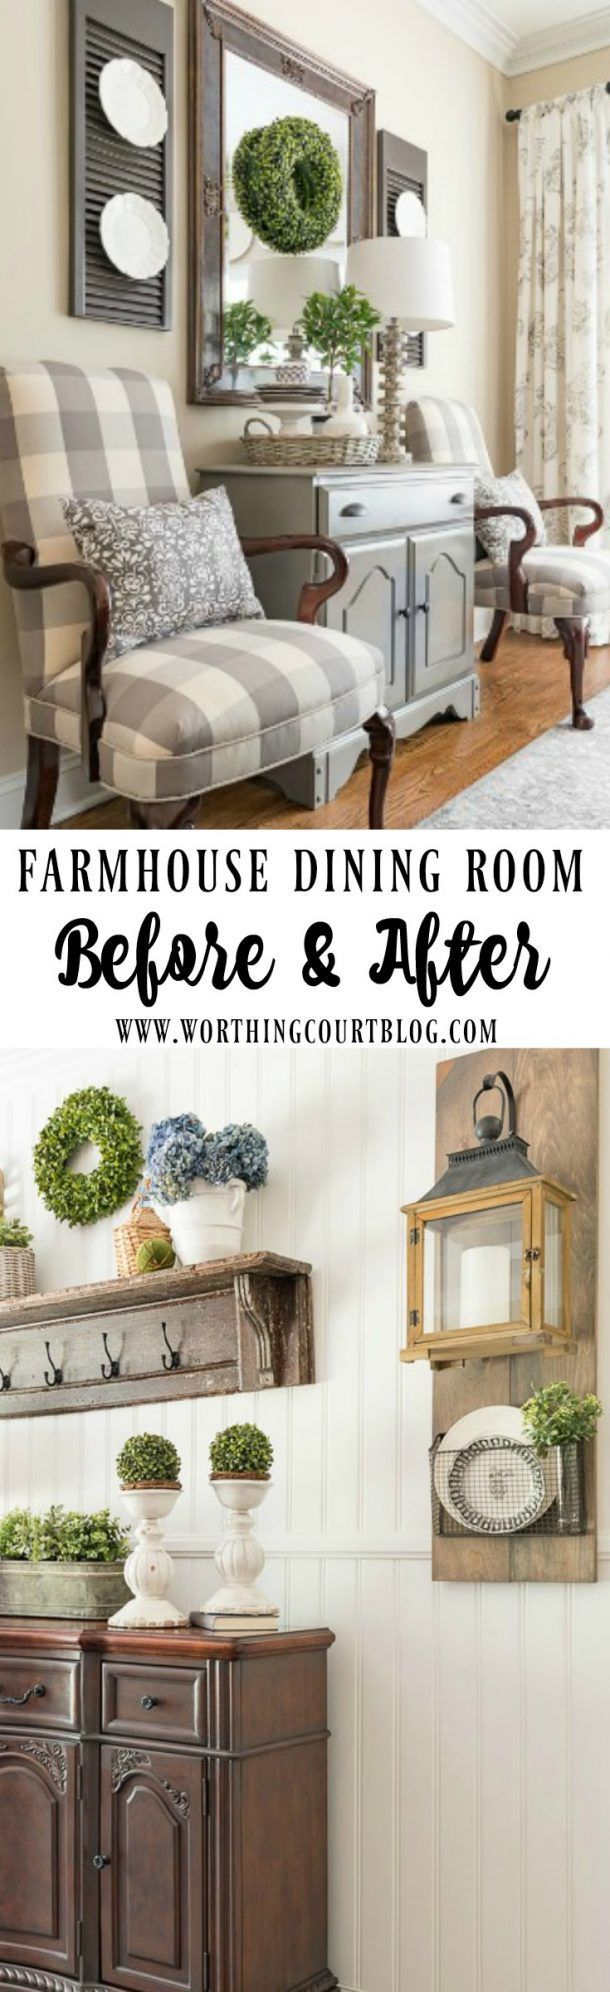 Best 25 dining room walls ideas on pinterest dining for Dining room wall decor ideas pinterest